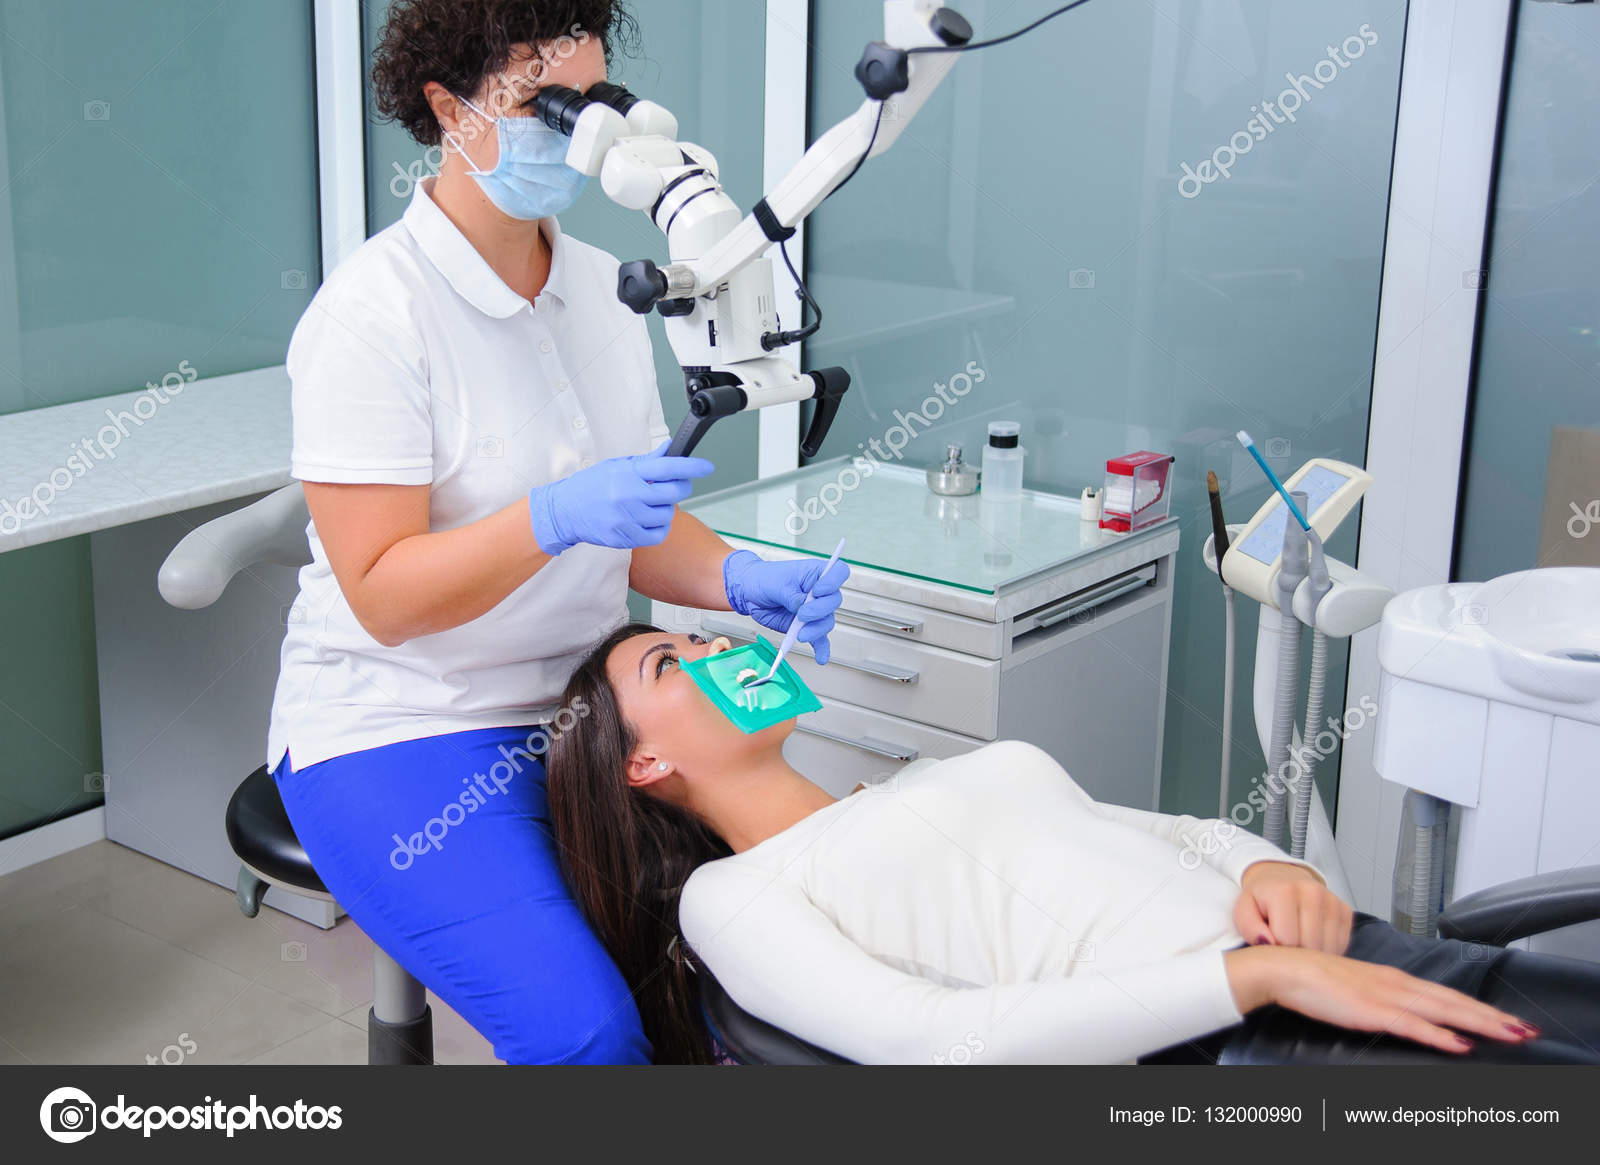 Ethics When romance blossoms between a dental hygienist and a patient